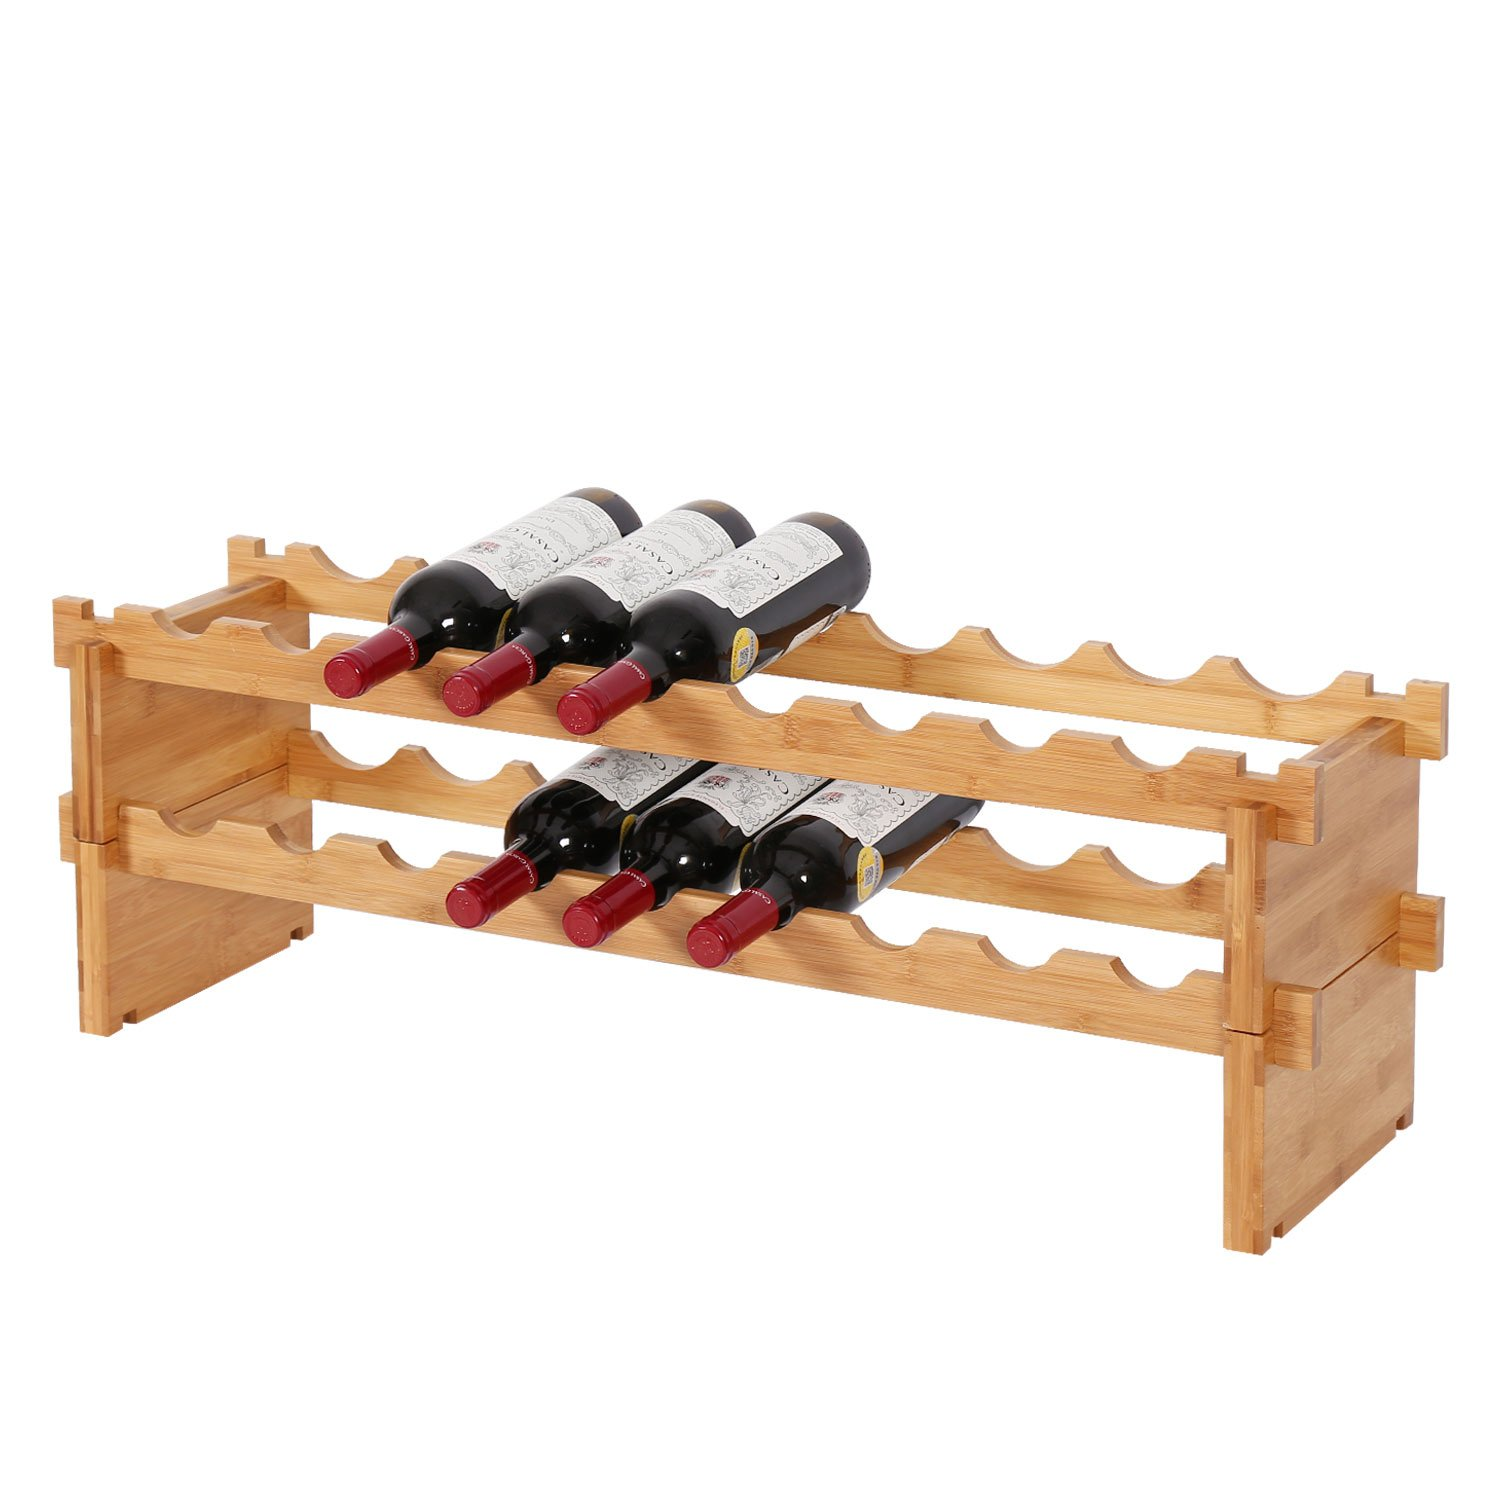 eachtree Press Inc 18-Bottle Bamboo Wine Rack Stackable Wine Holder Storage Display Shelf